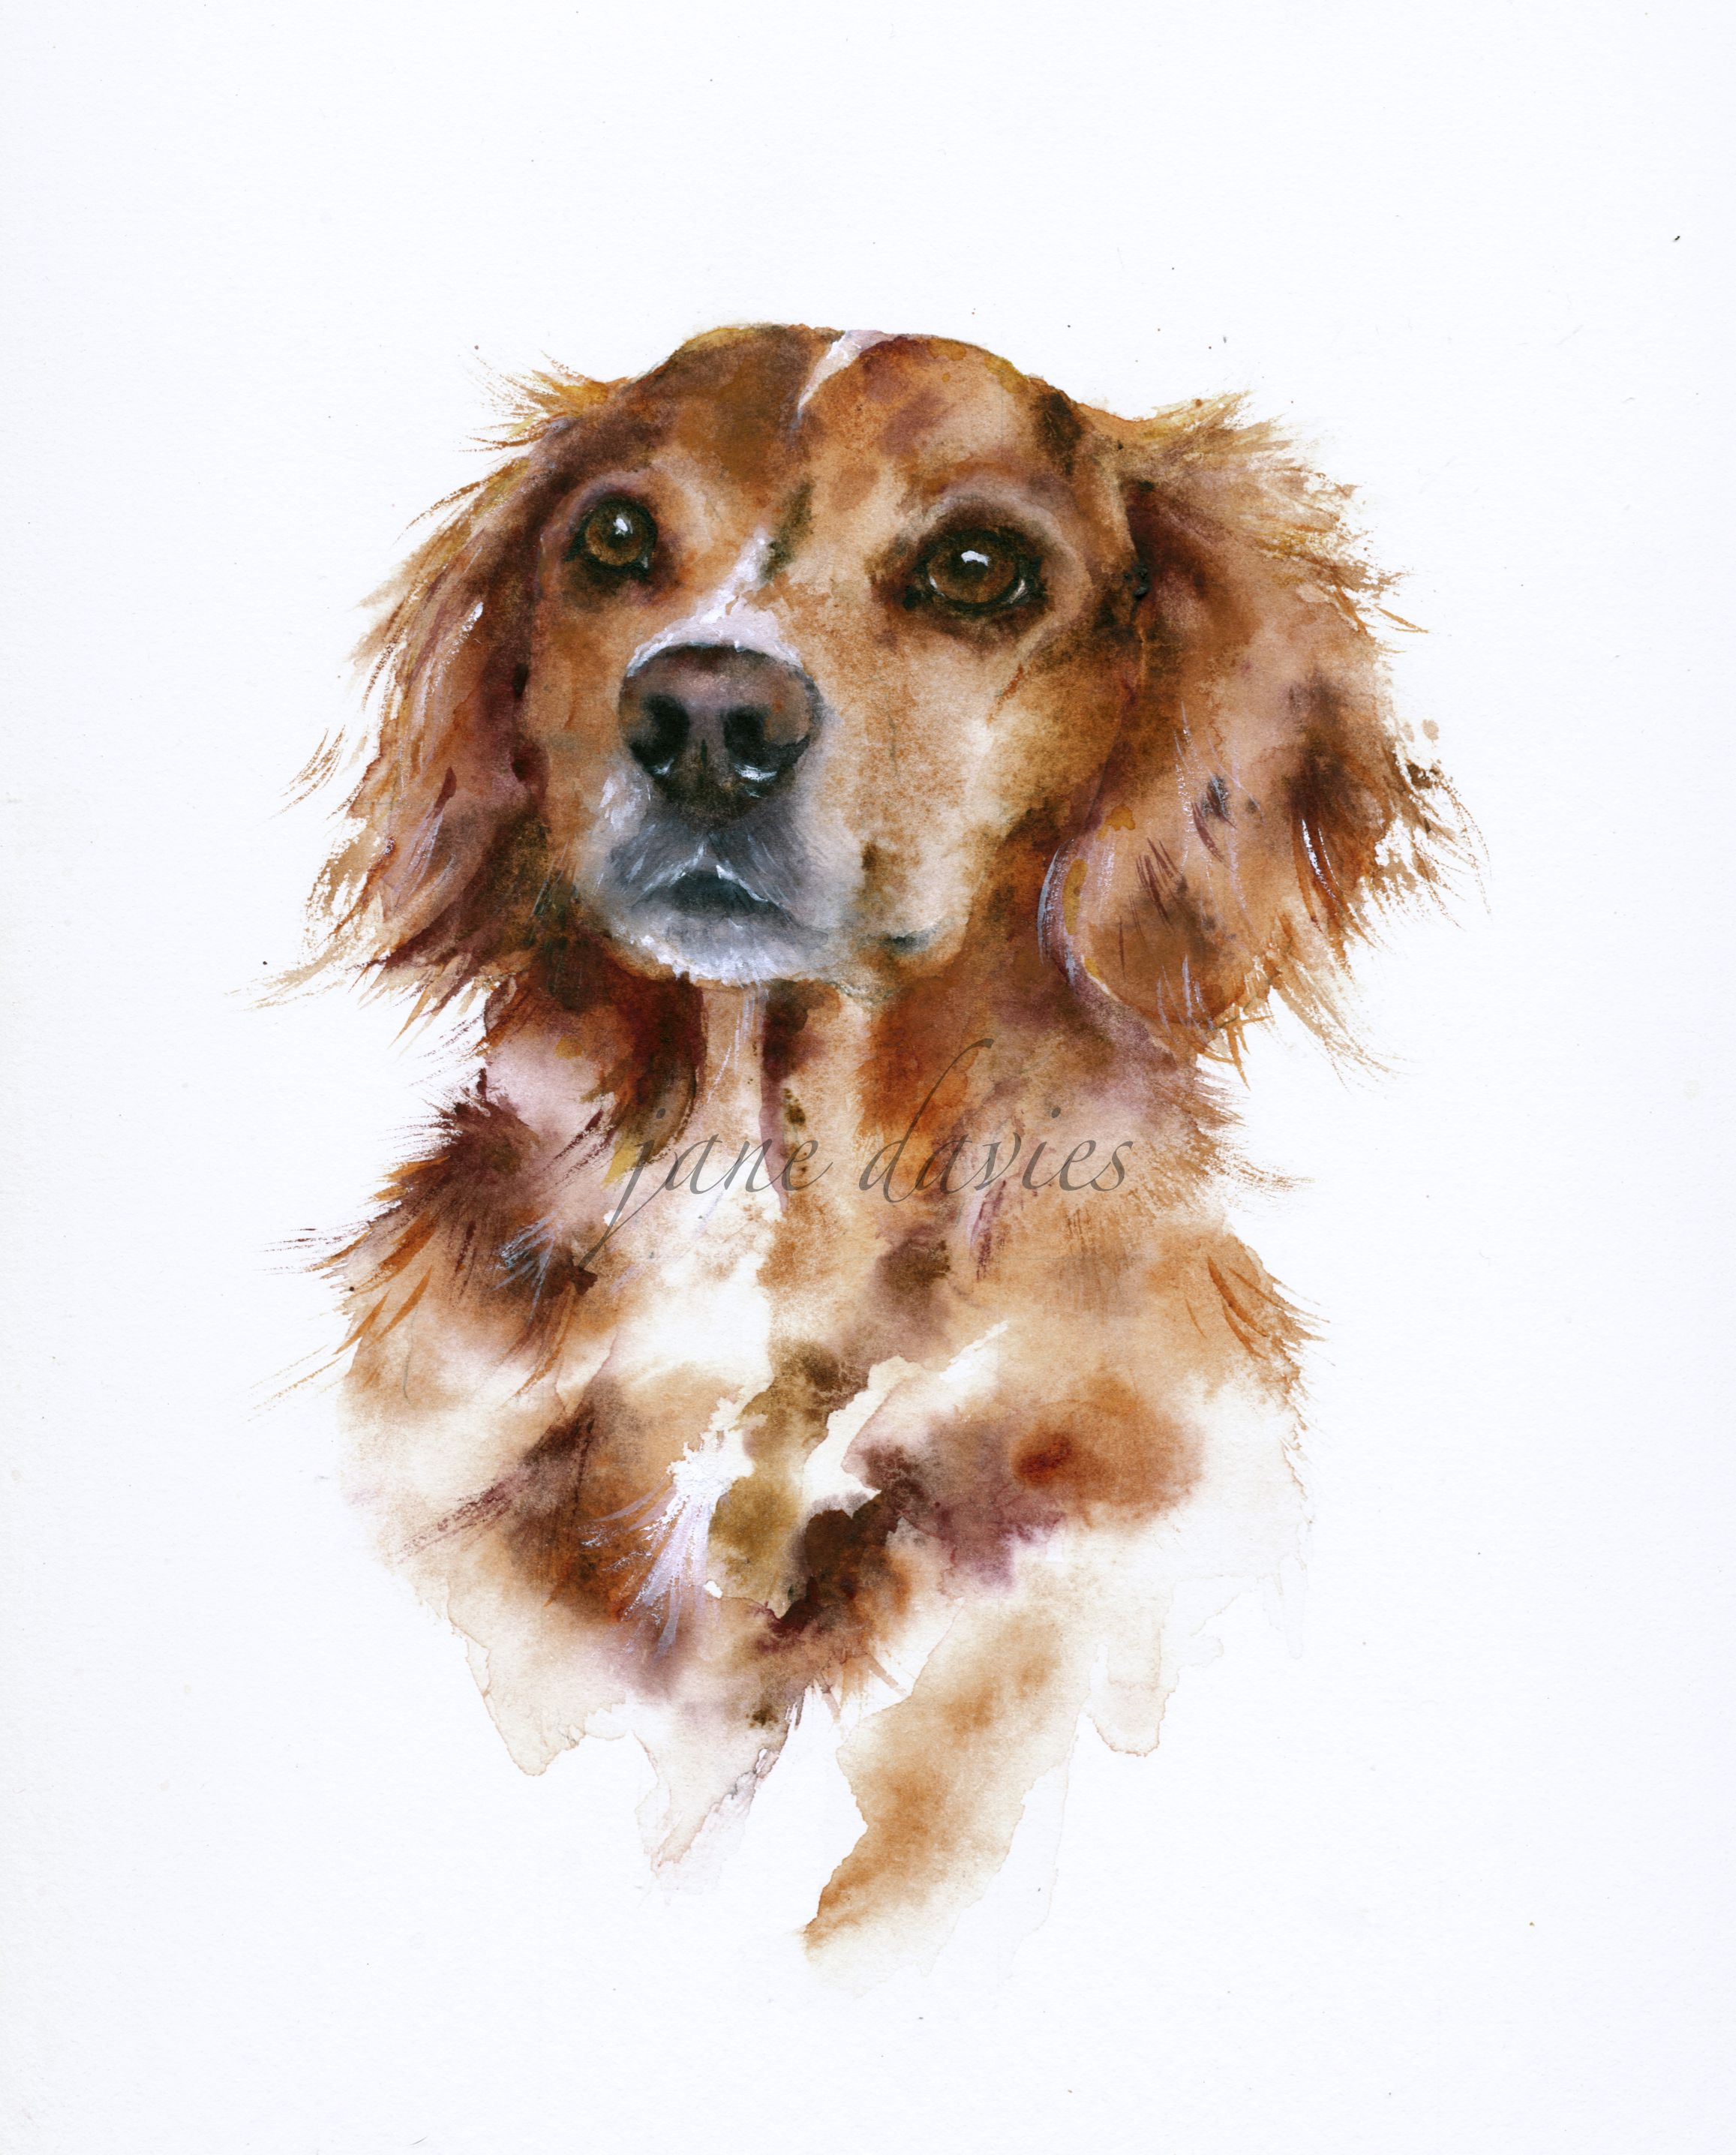 Pet Portrait Of A Spaniel Cross Painted In Watercolour By Artist Jane Davies